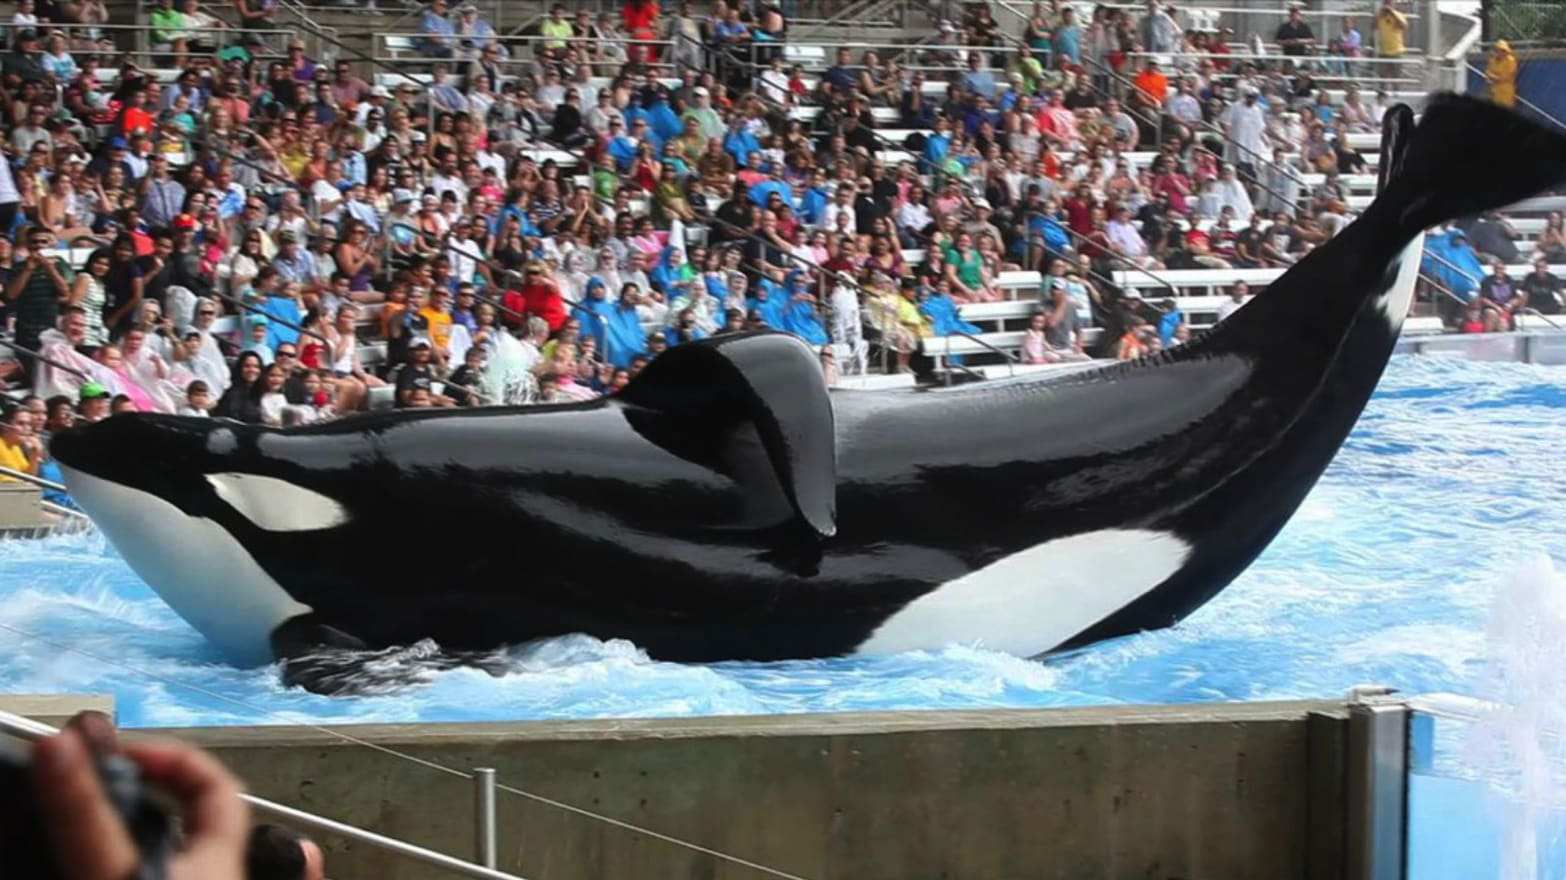 'Blackfish' Director: Killer Whales Don't Belong in Captivity